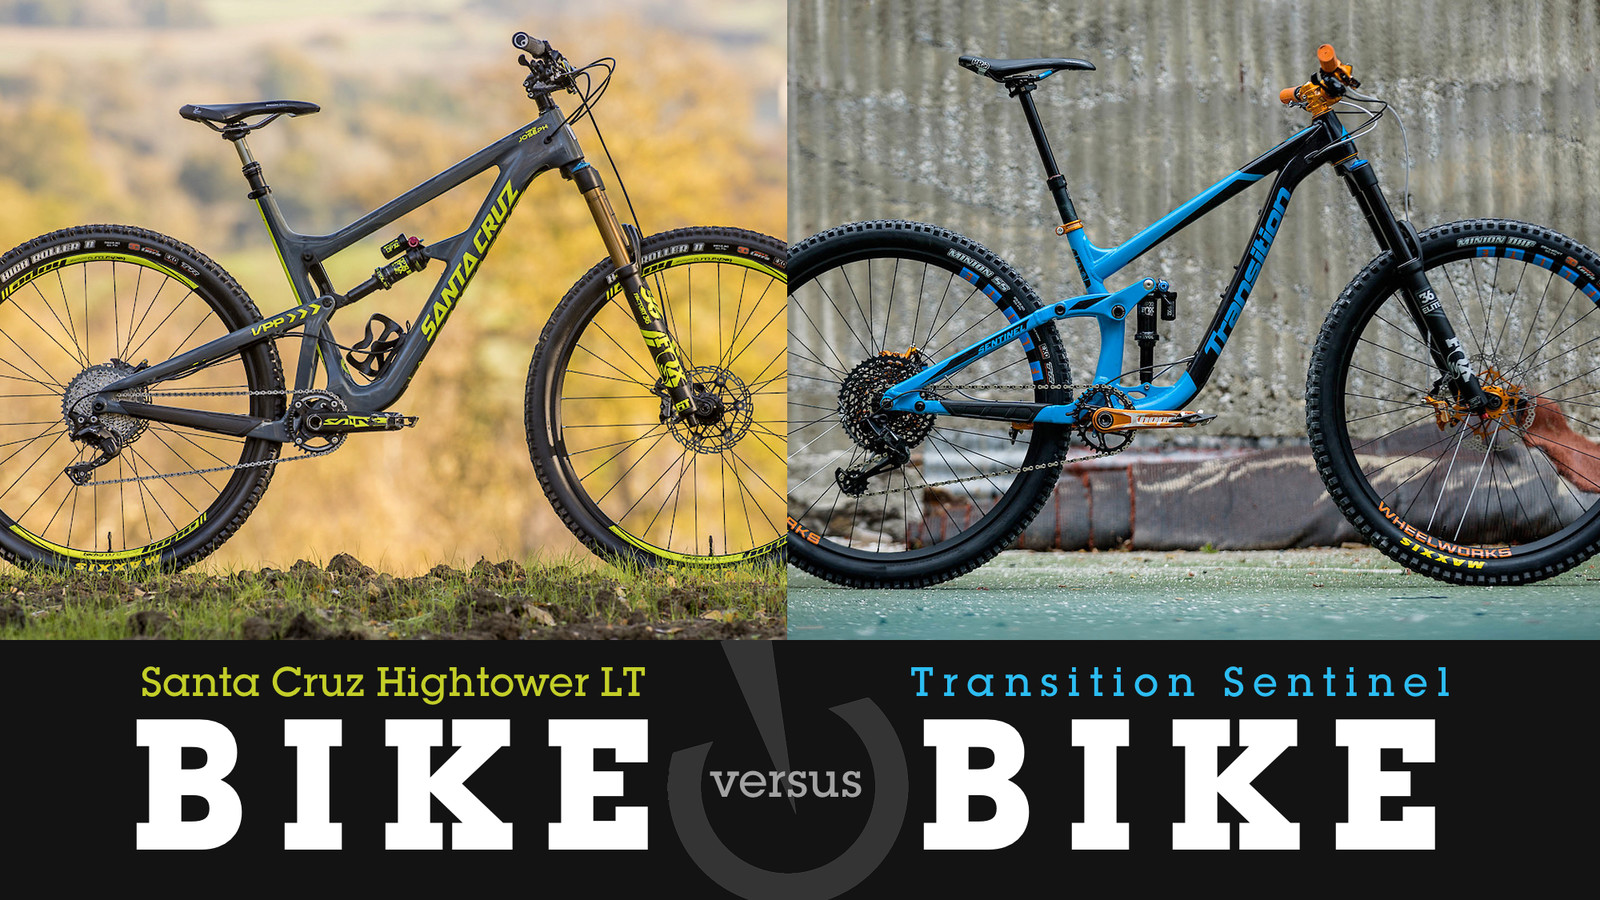 Bike vs. Bike - Santa Cruz Hightower LT or Transition Sentinel